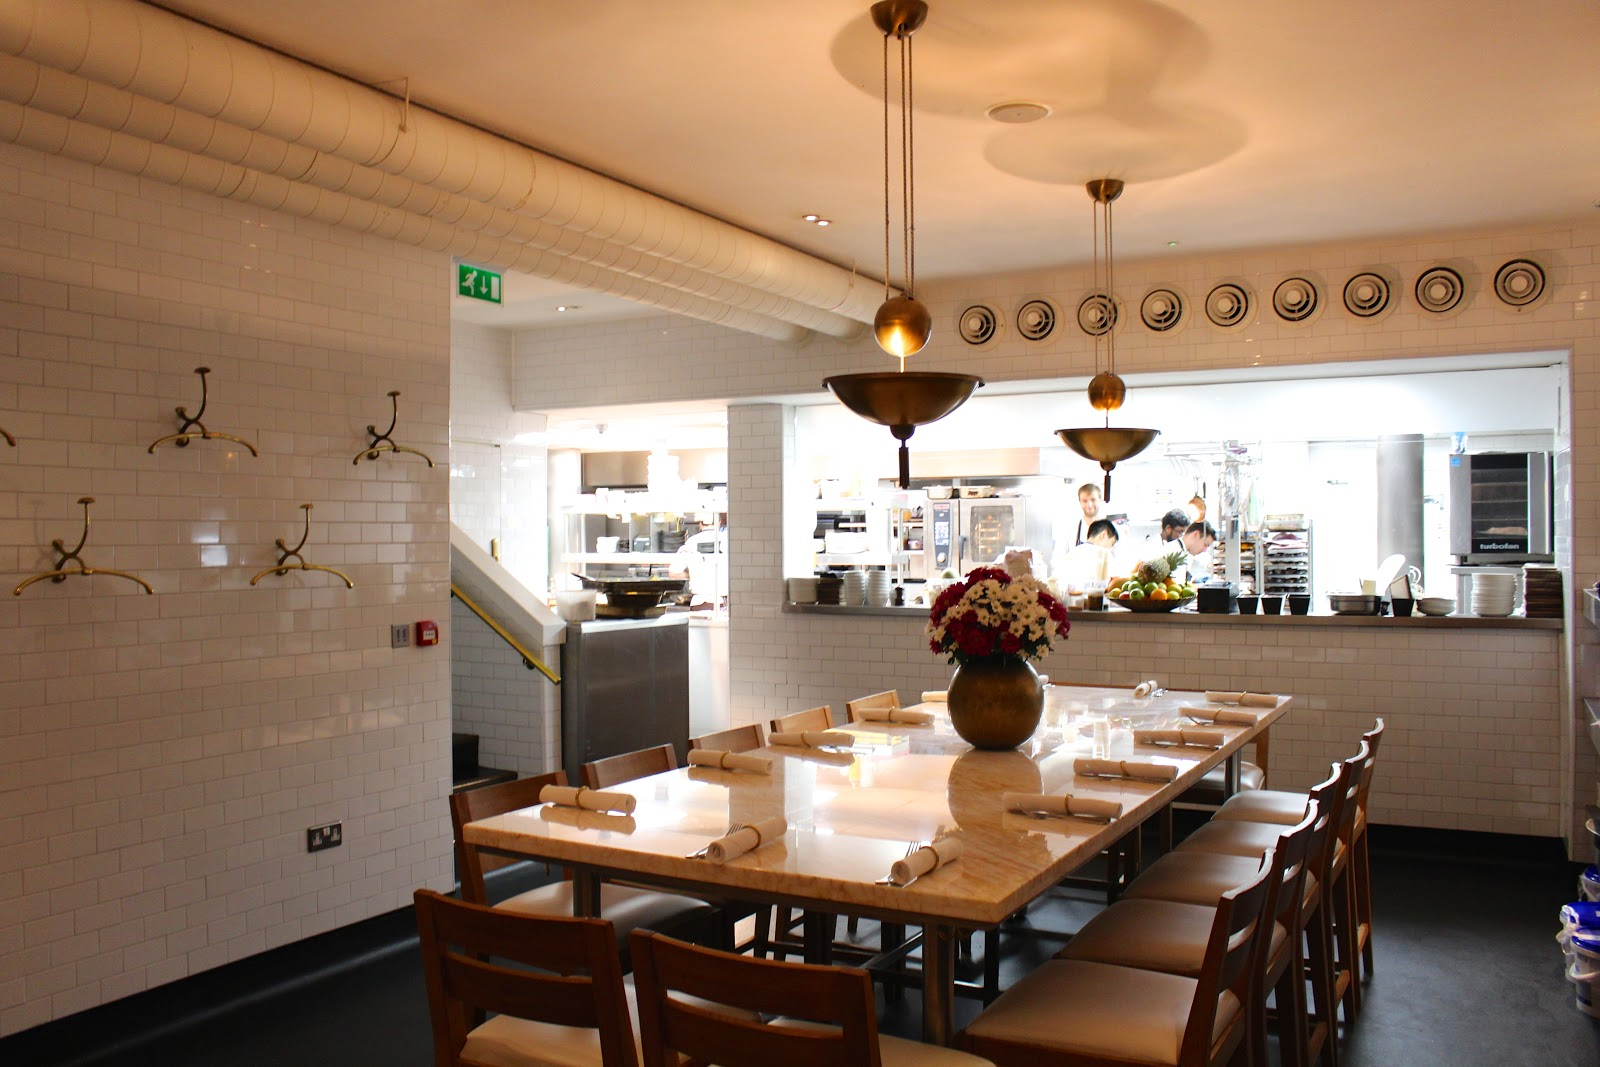 Breakfast at Nopi by Ottolenghi   London